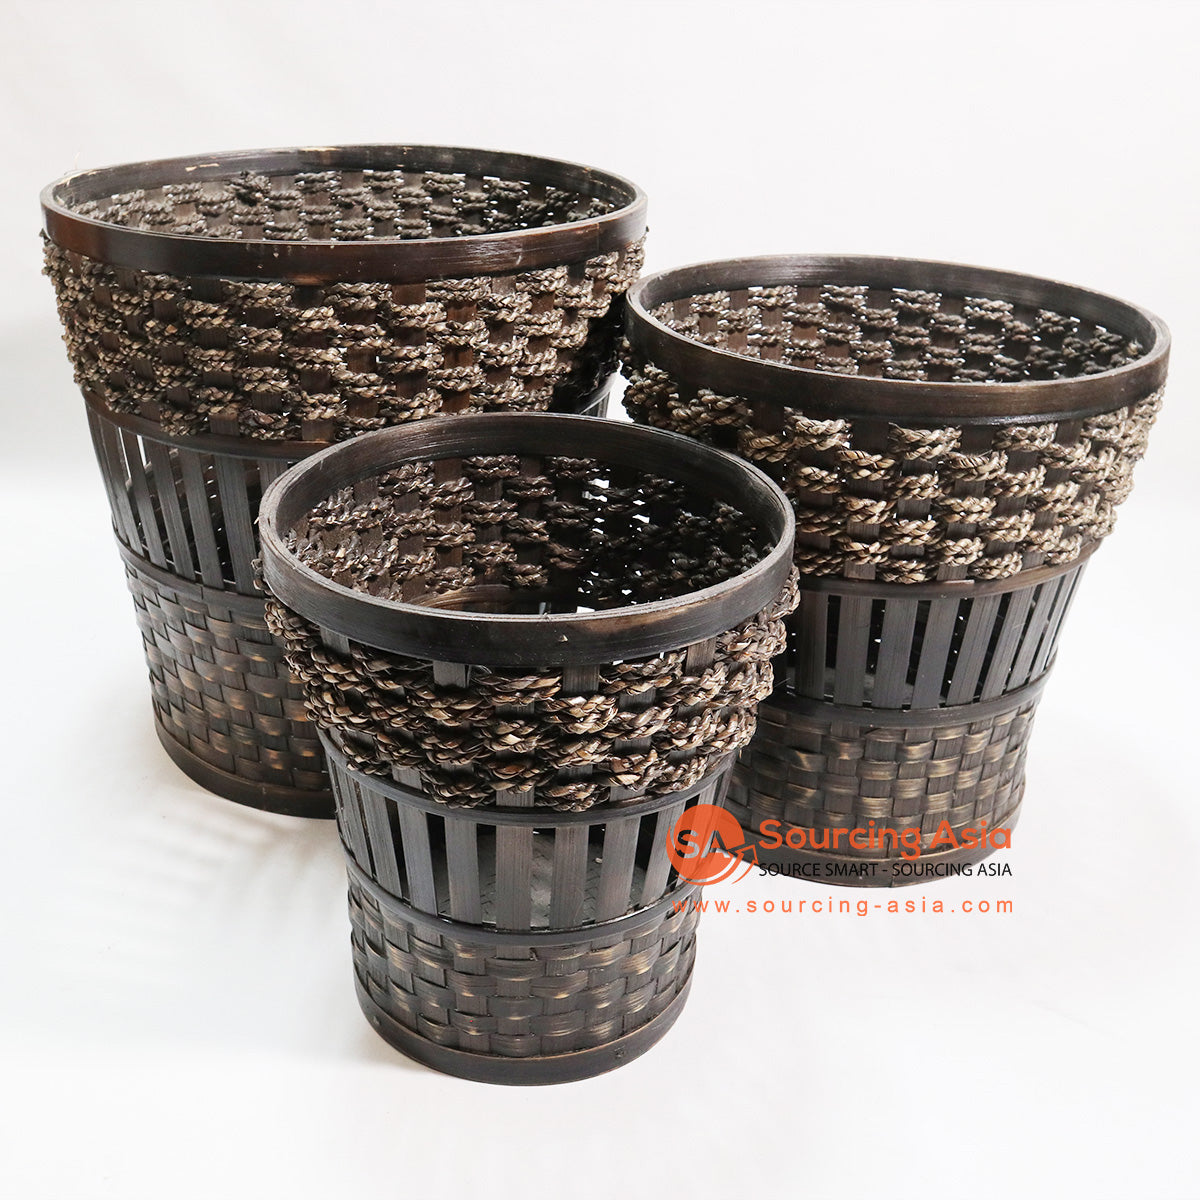 HBSC07-1 SET OF 3 BAMBOO AND SEA GRASS BASKETS